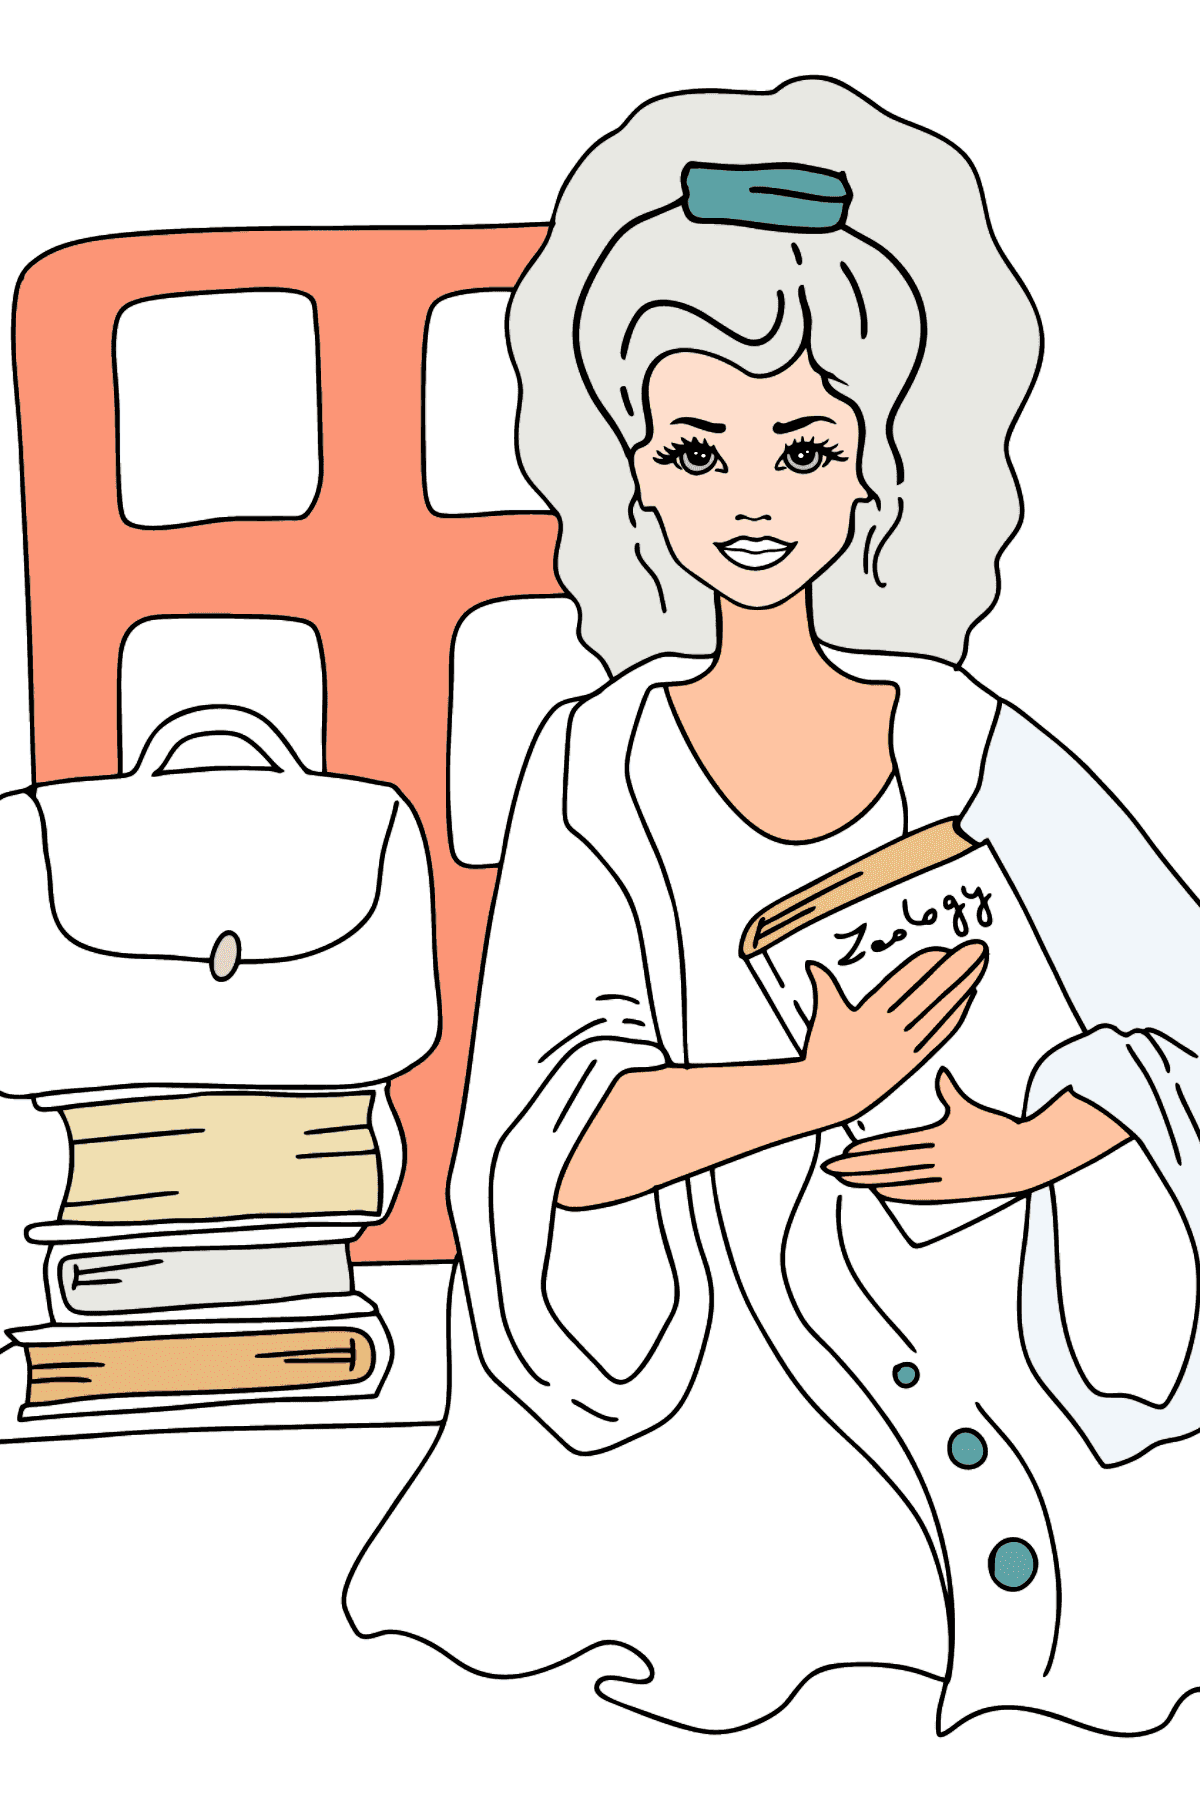 Barbie Doll Student coloring page - Coloring Pages for Kids